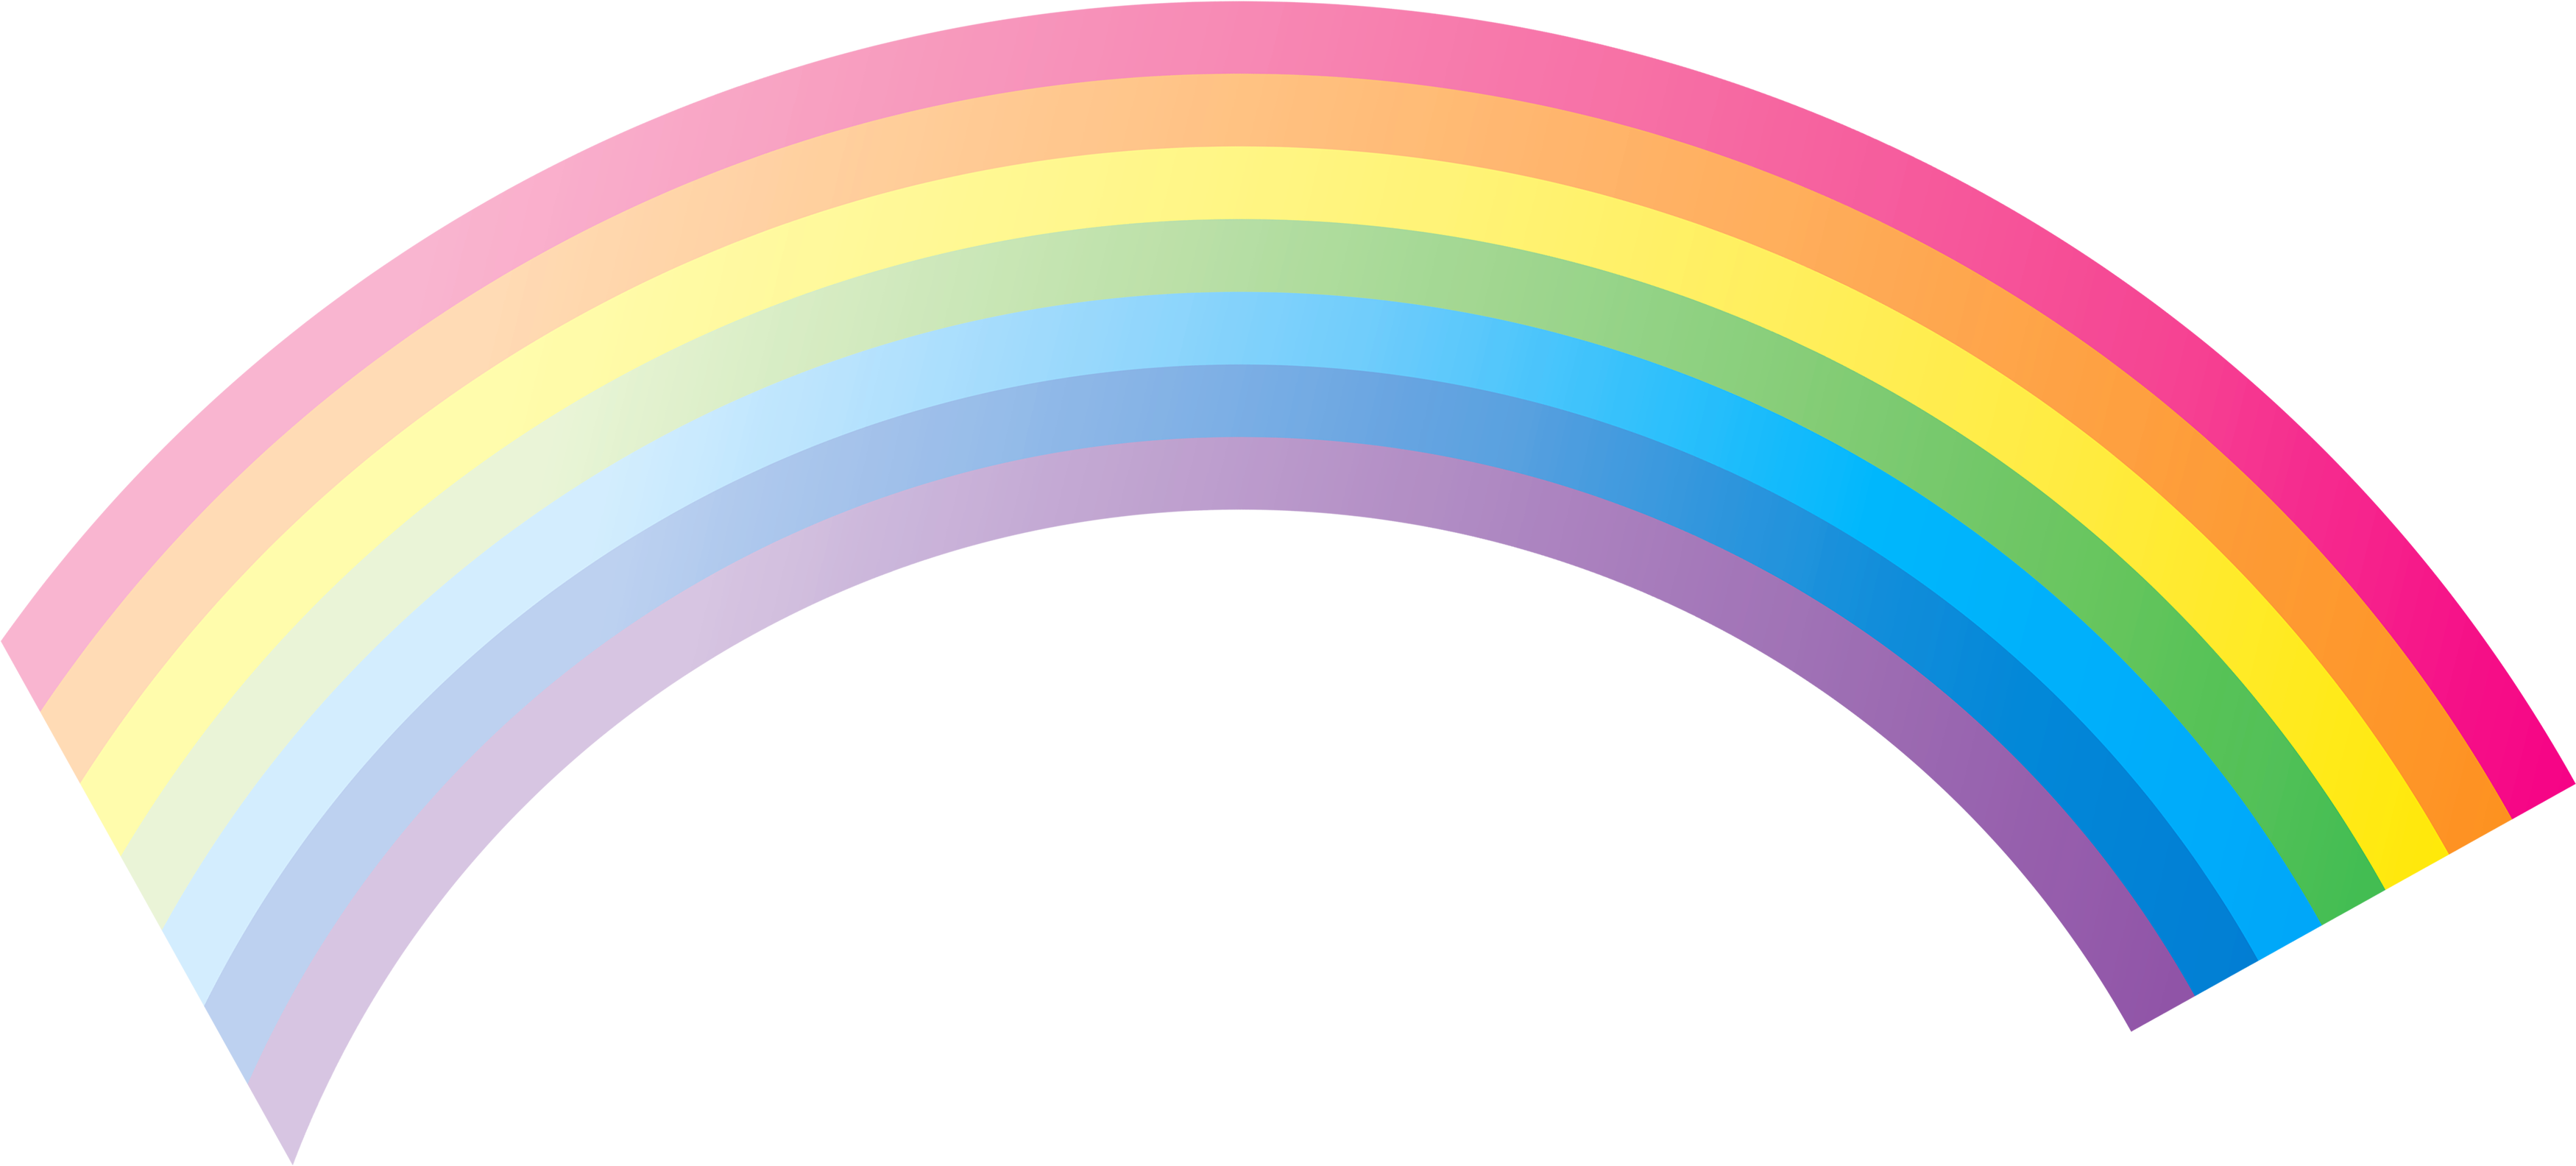 Rainbow background png. Icon web icons